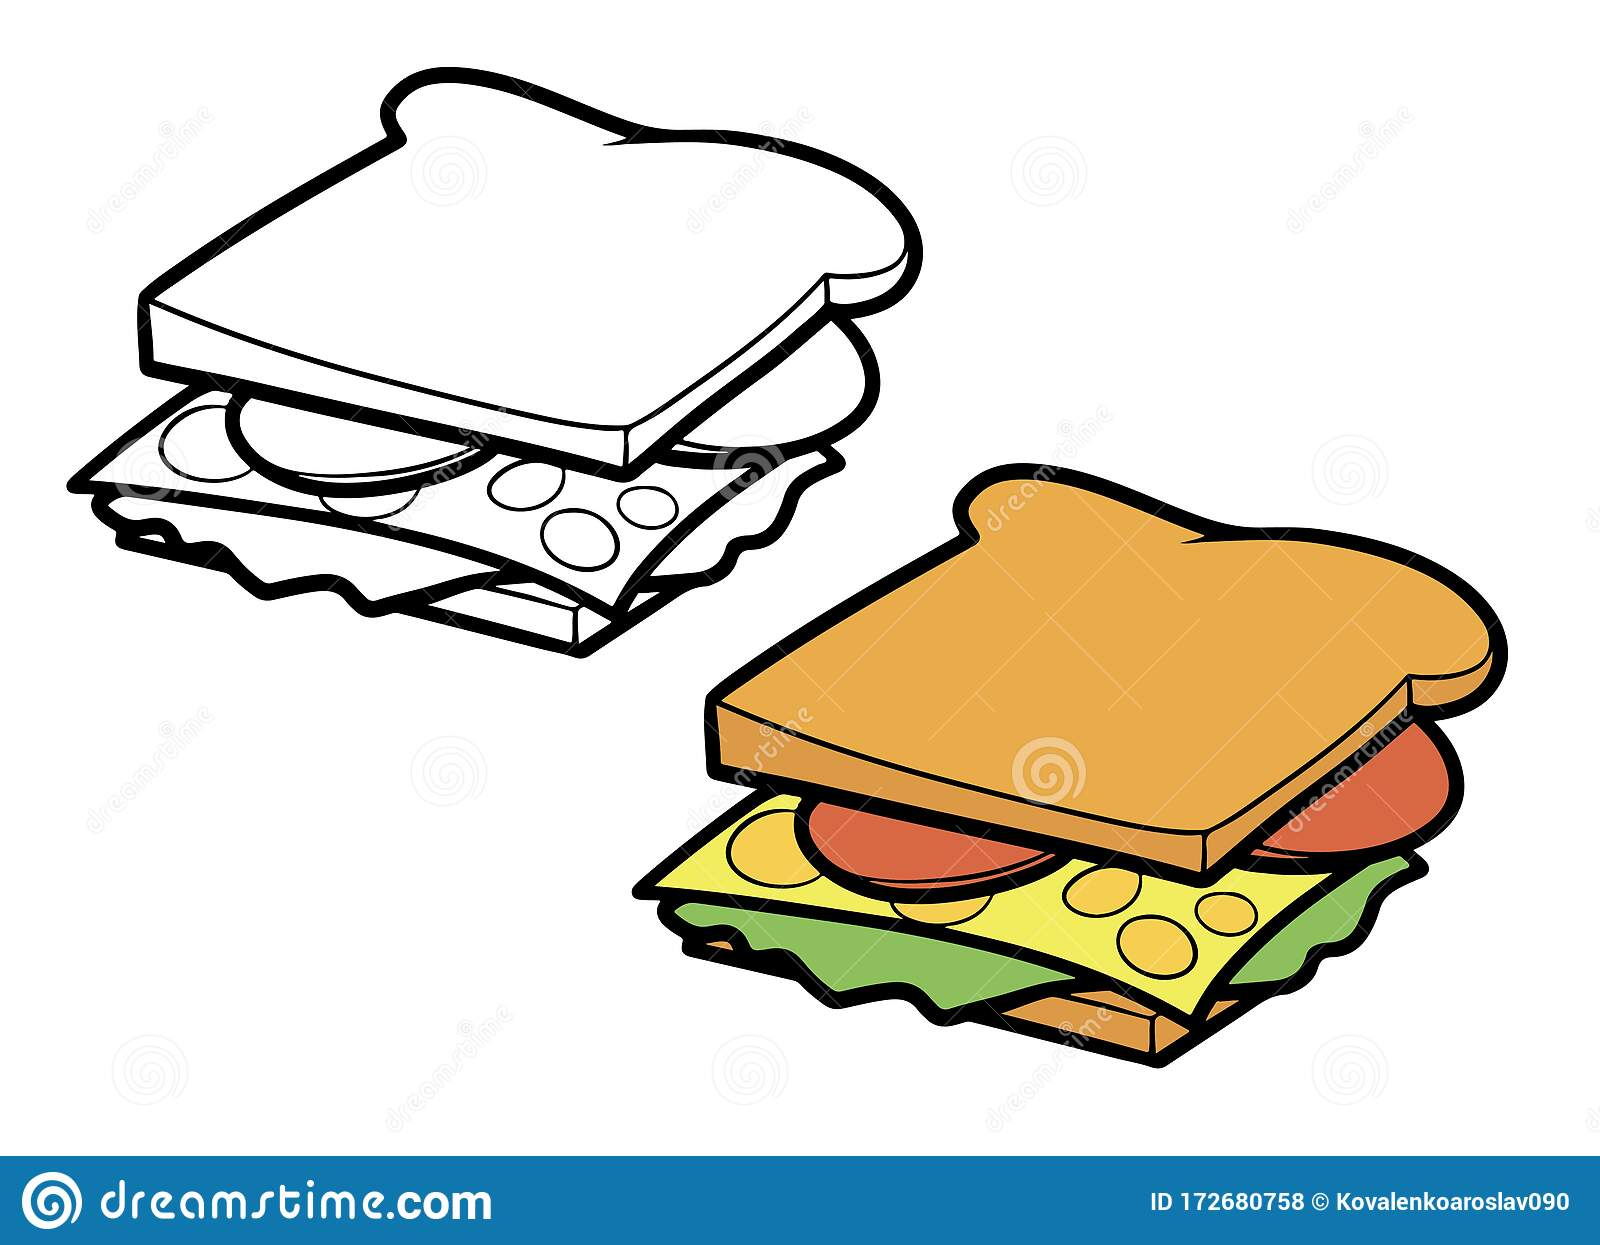 two types of cartoon sandwich with sausage cheese and herbs colored and black and white stock illustration illustration of fresh isolated 172680758 dreamstime com